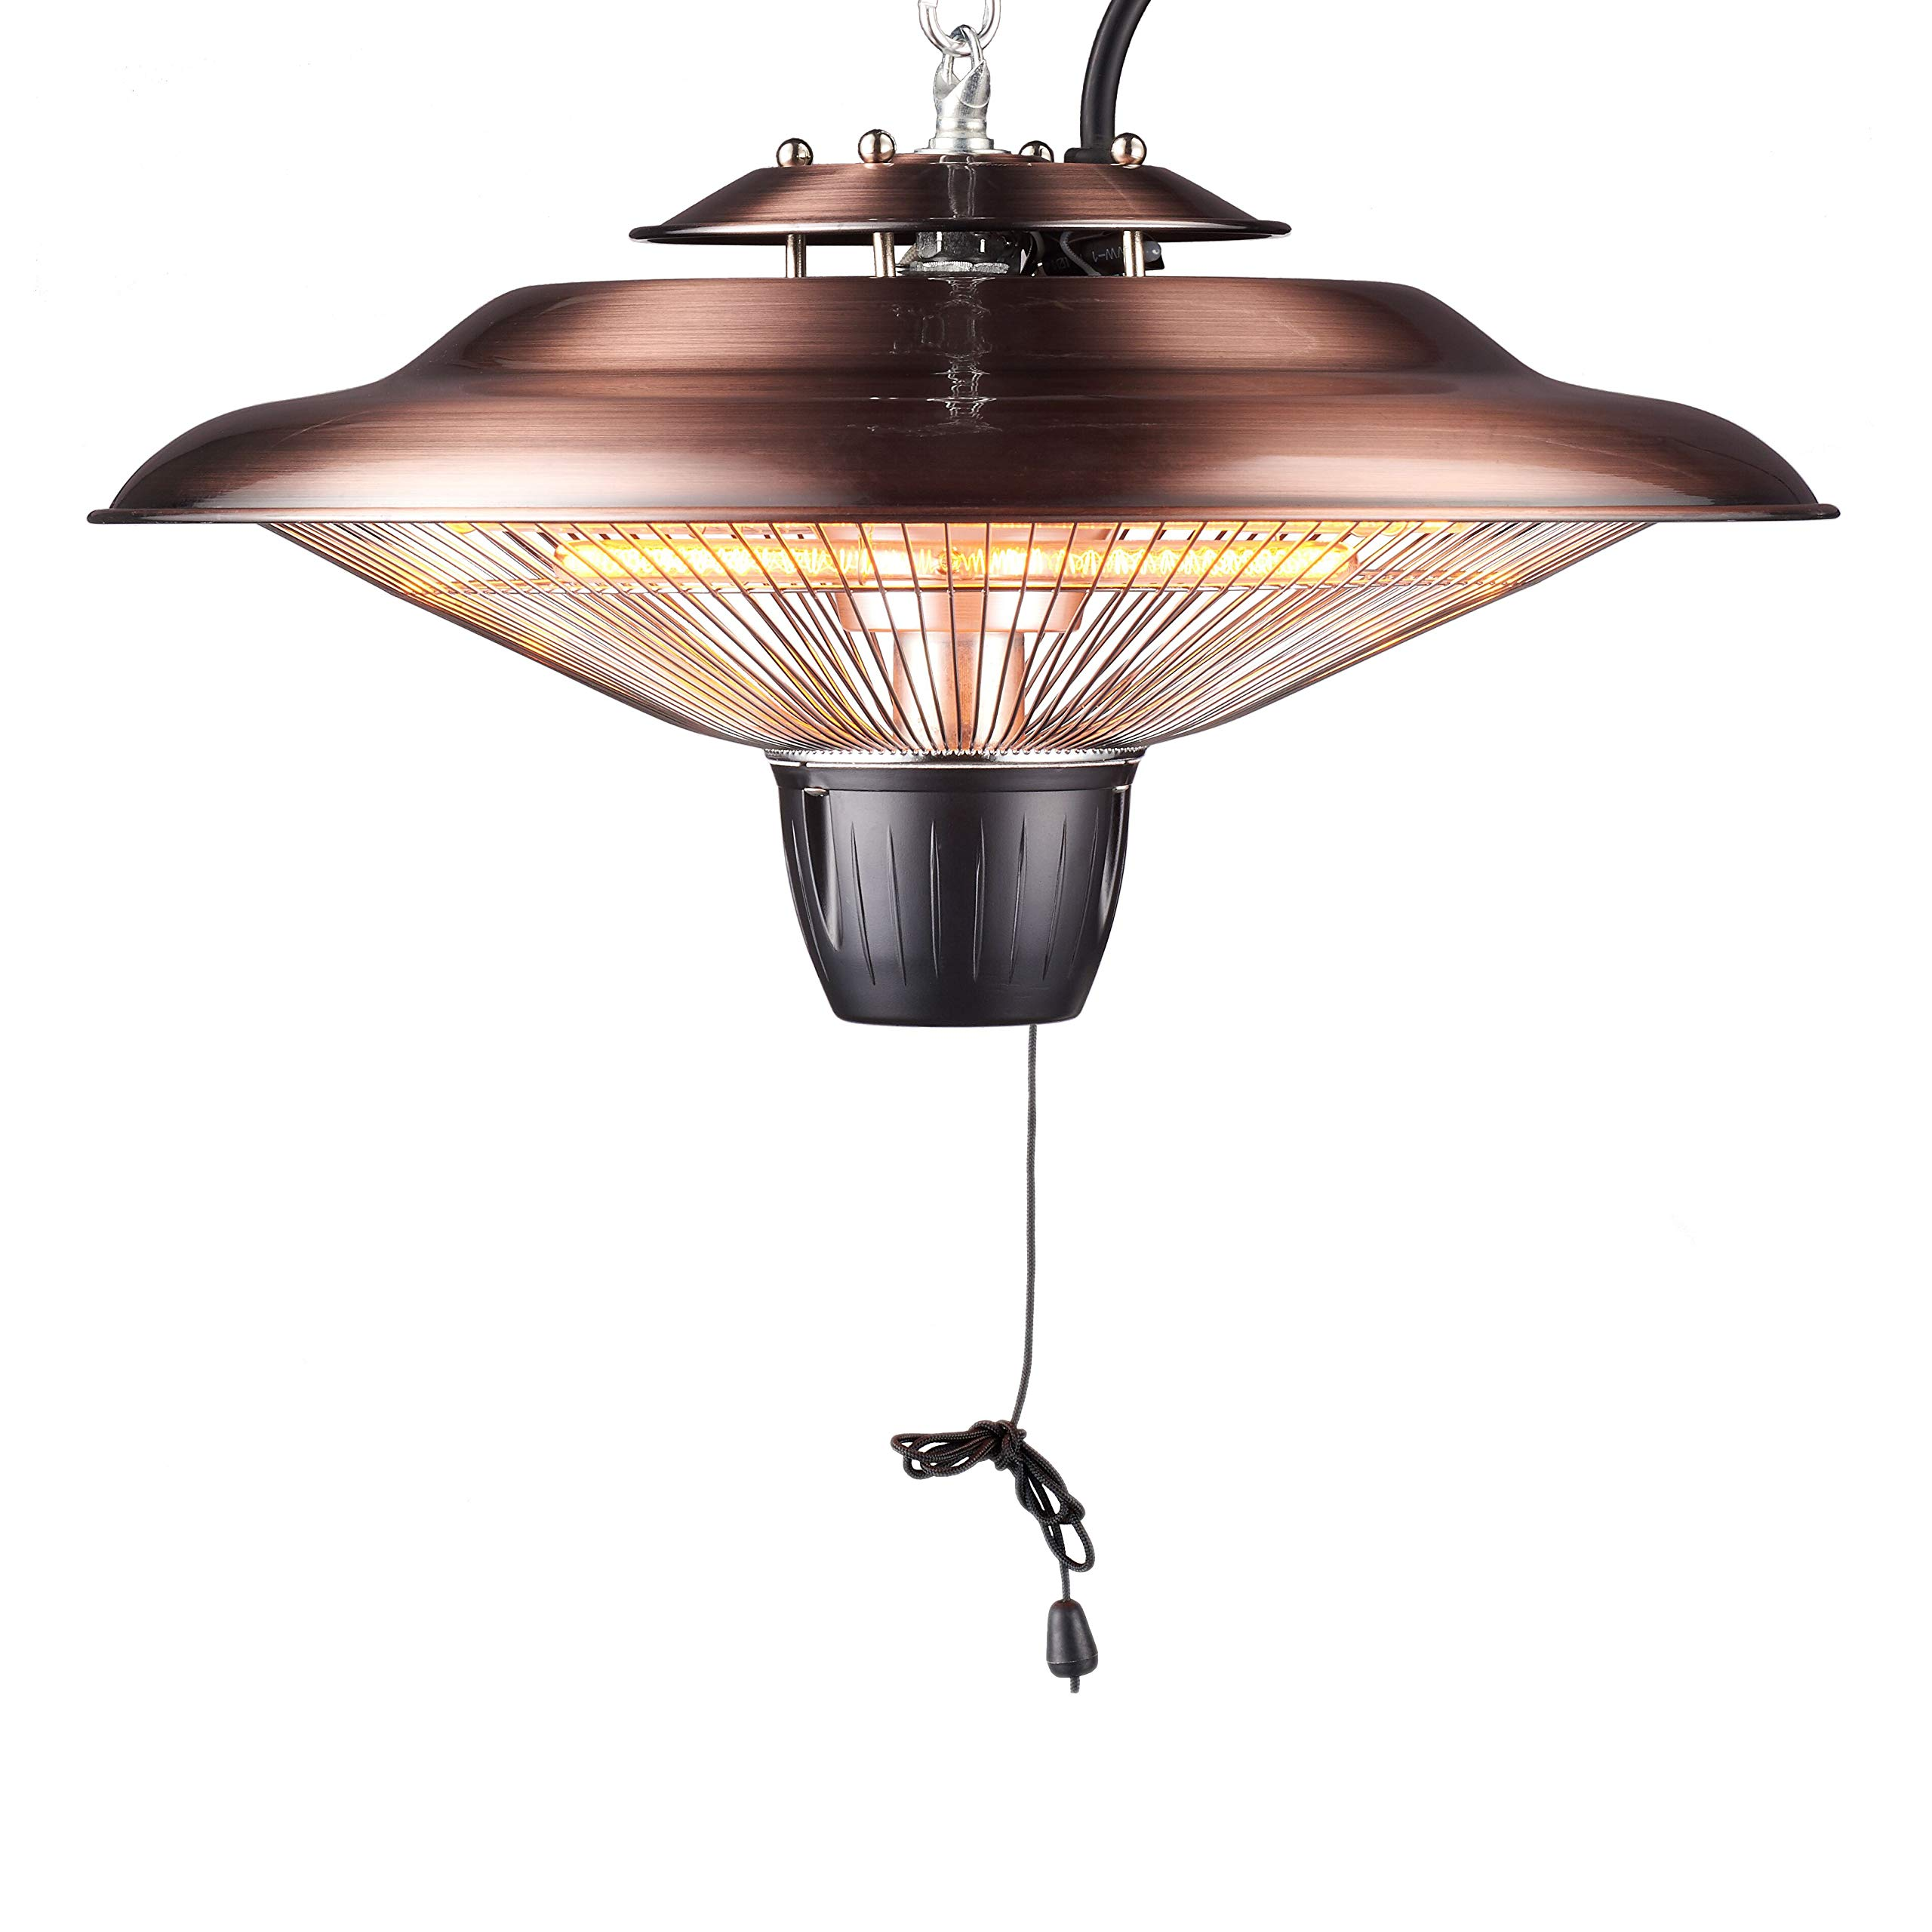 DONYER POWER 1500W Outdoor/Indoor Electric Patio Heater, Ceiling Mounted, Iron (HCH502, Coppering) by DONYER POWER